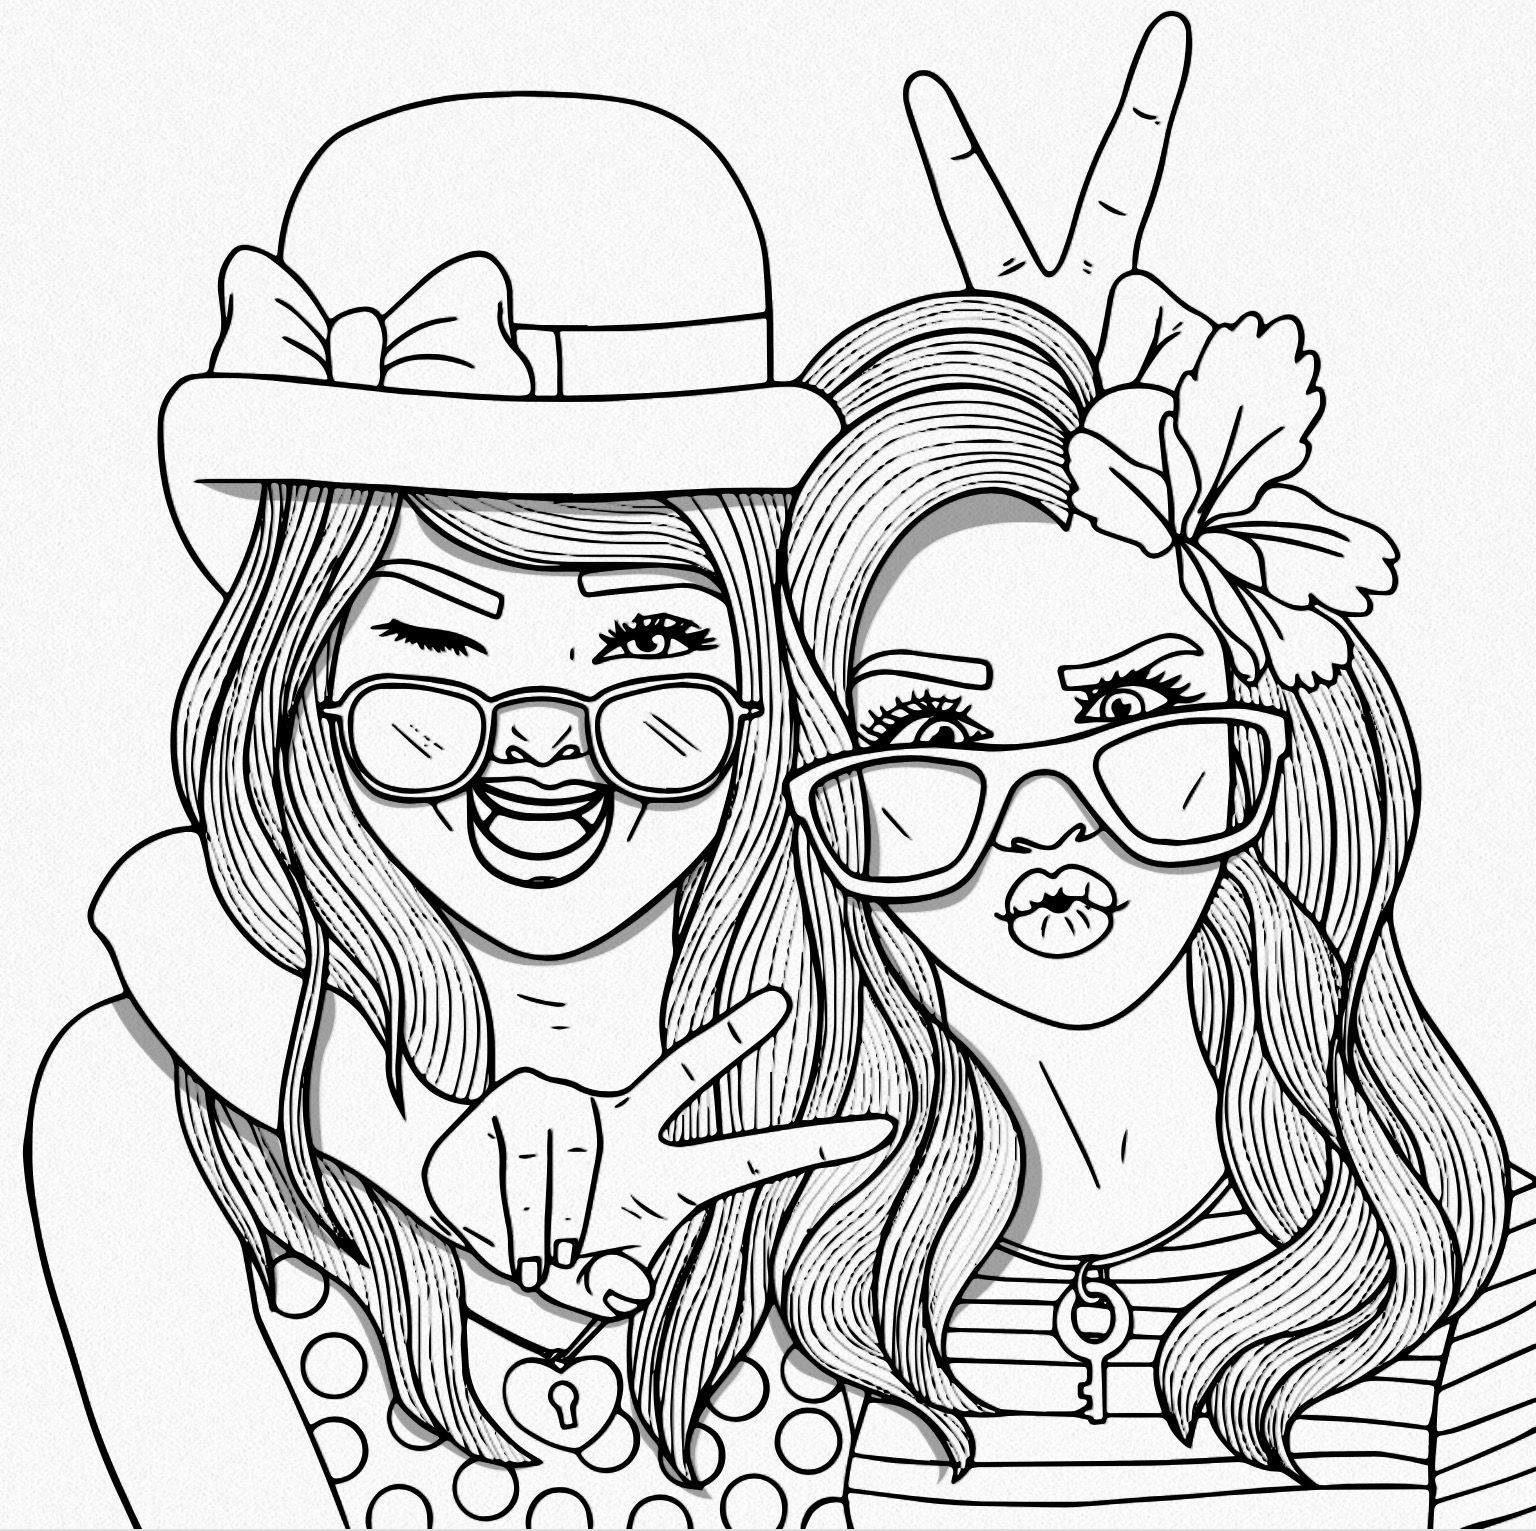 Bestie People coloring pages, Cute coloring pages, Cool